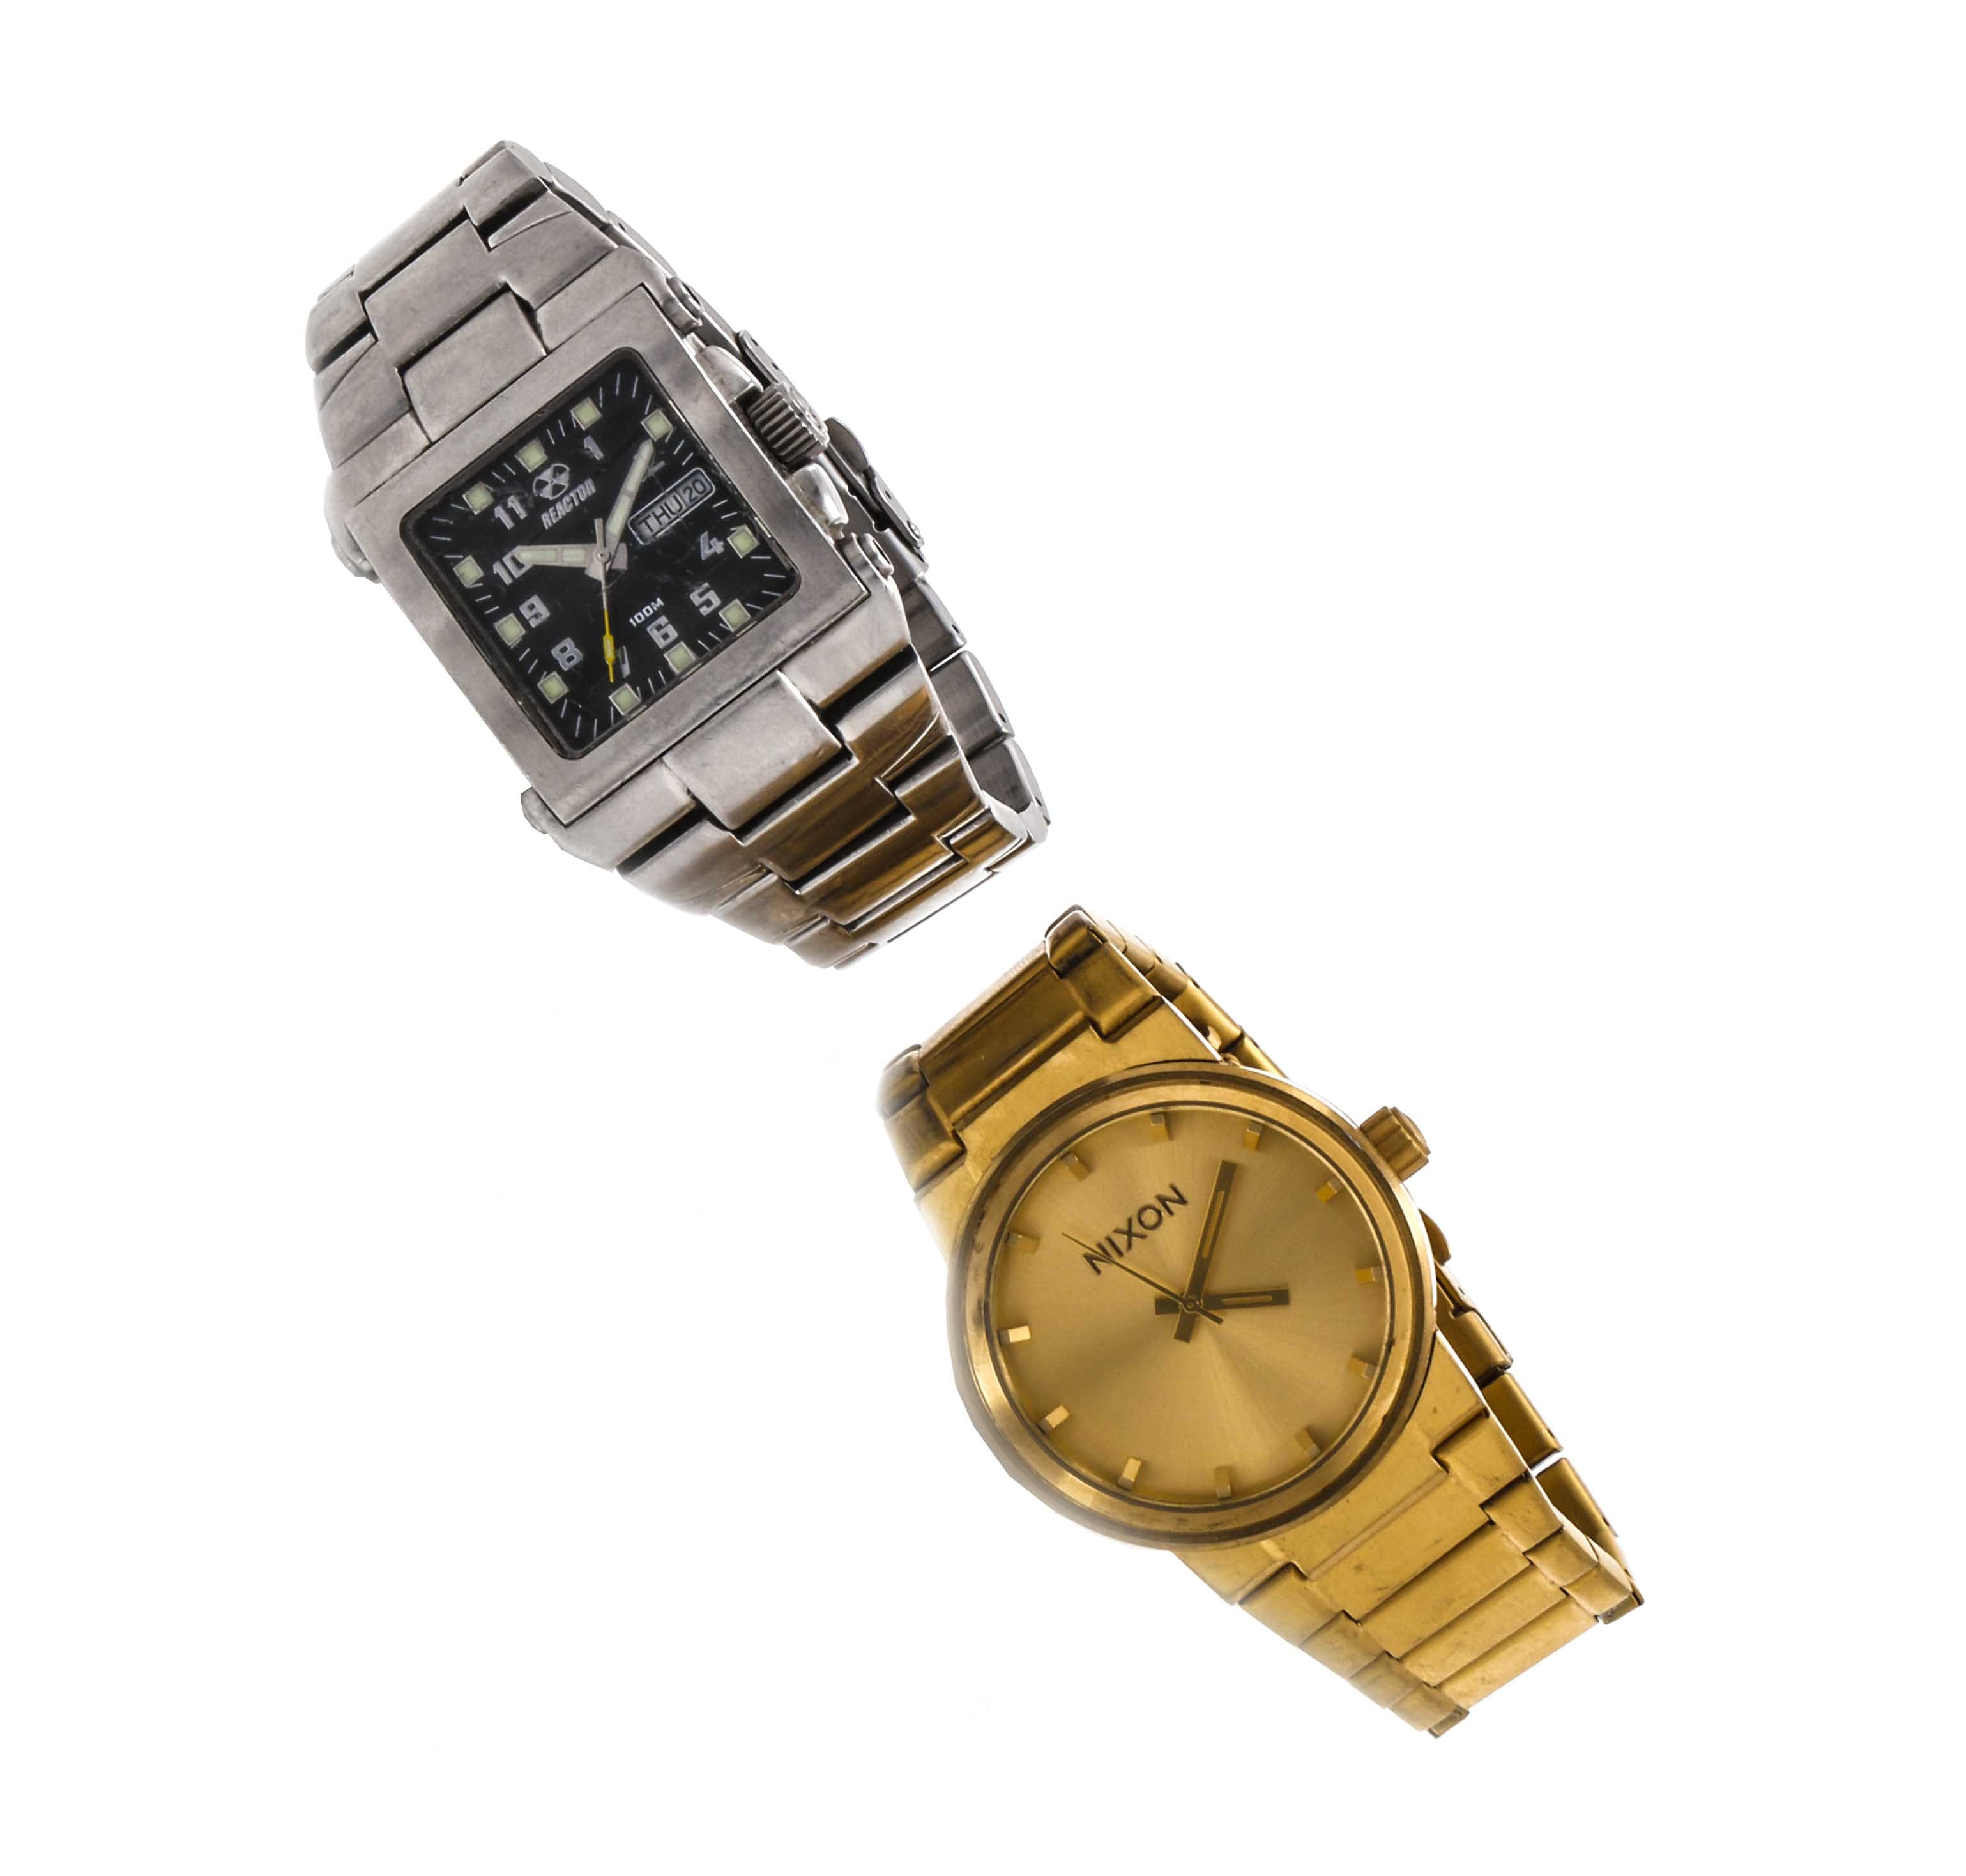 Reactor and Nixon Wristwatches